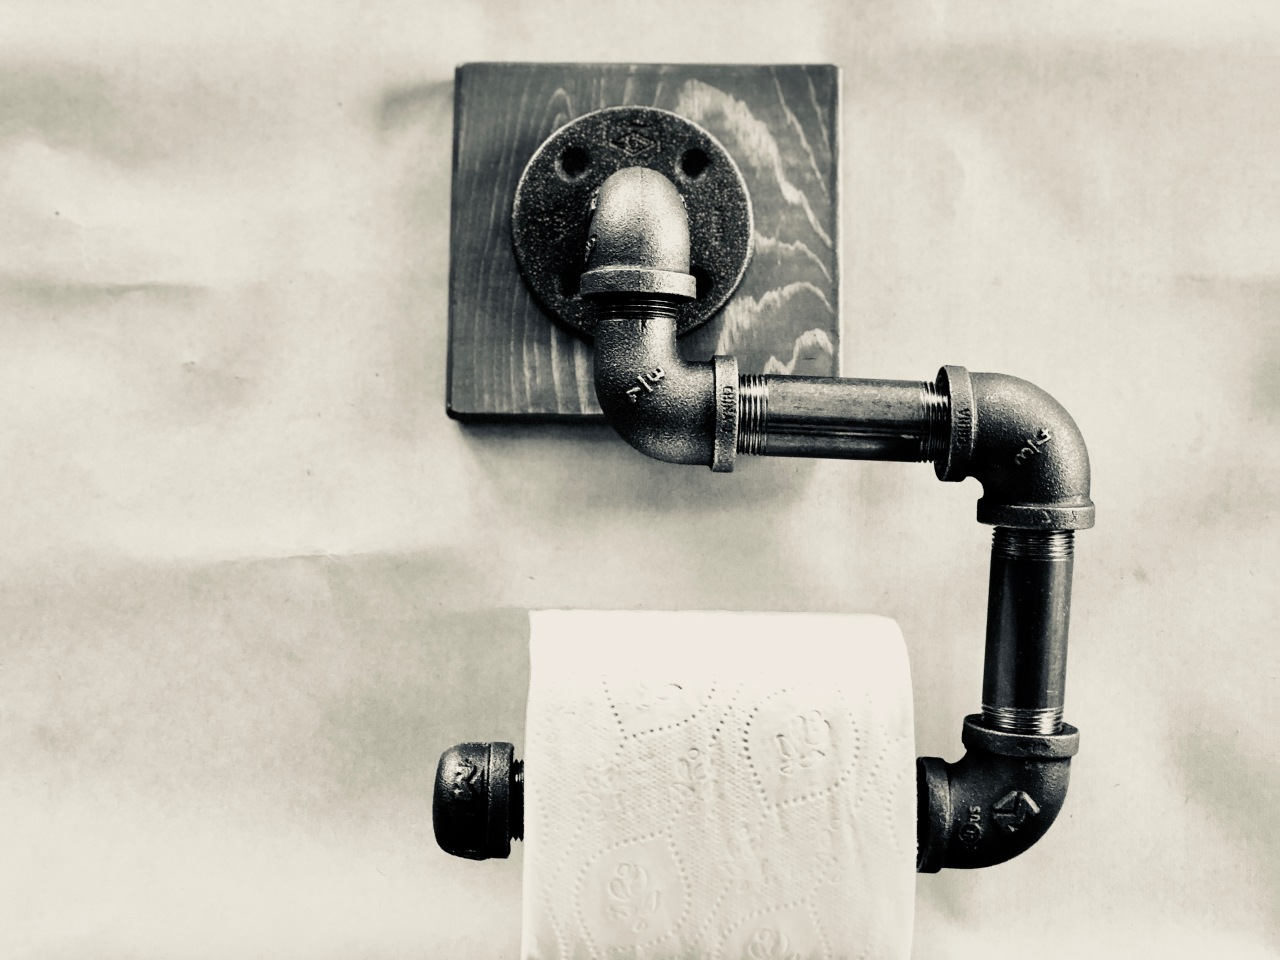 Do it yourself plumbers pipe tp holder plumbers pipe is a great look for any industrial style bathroom let us show you how easy it is to create a plumbers pipe toilet paper holder there are so solutioingenieria Images